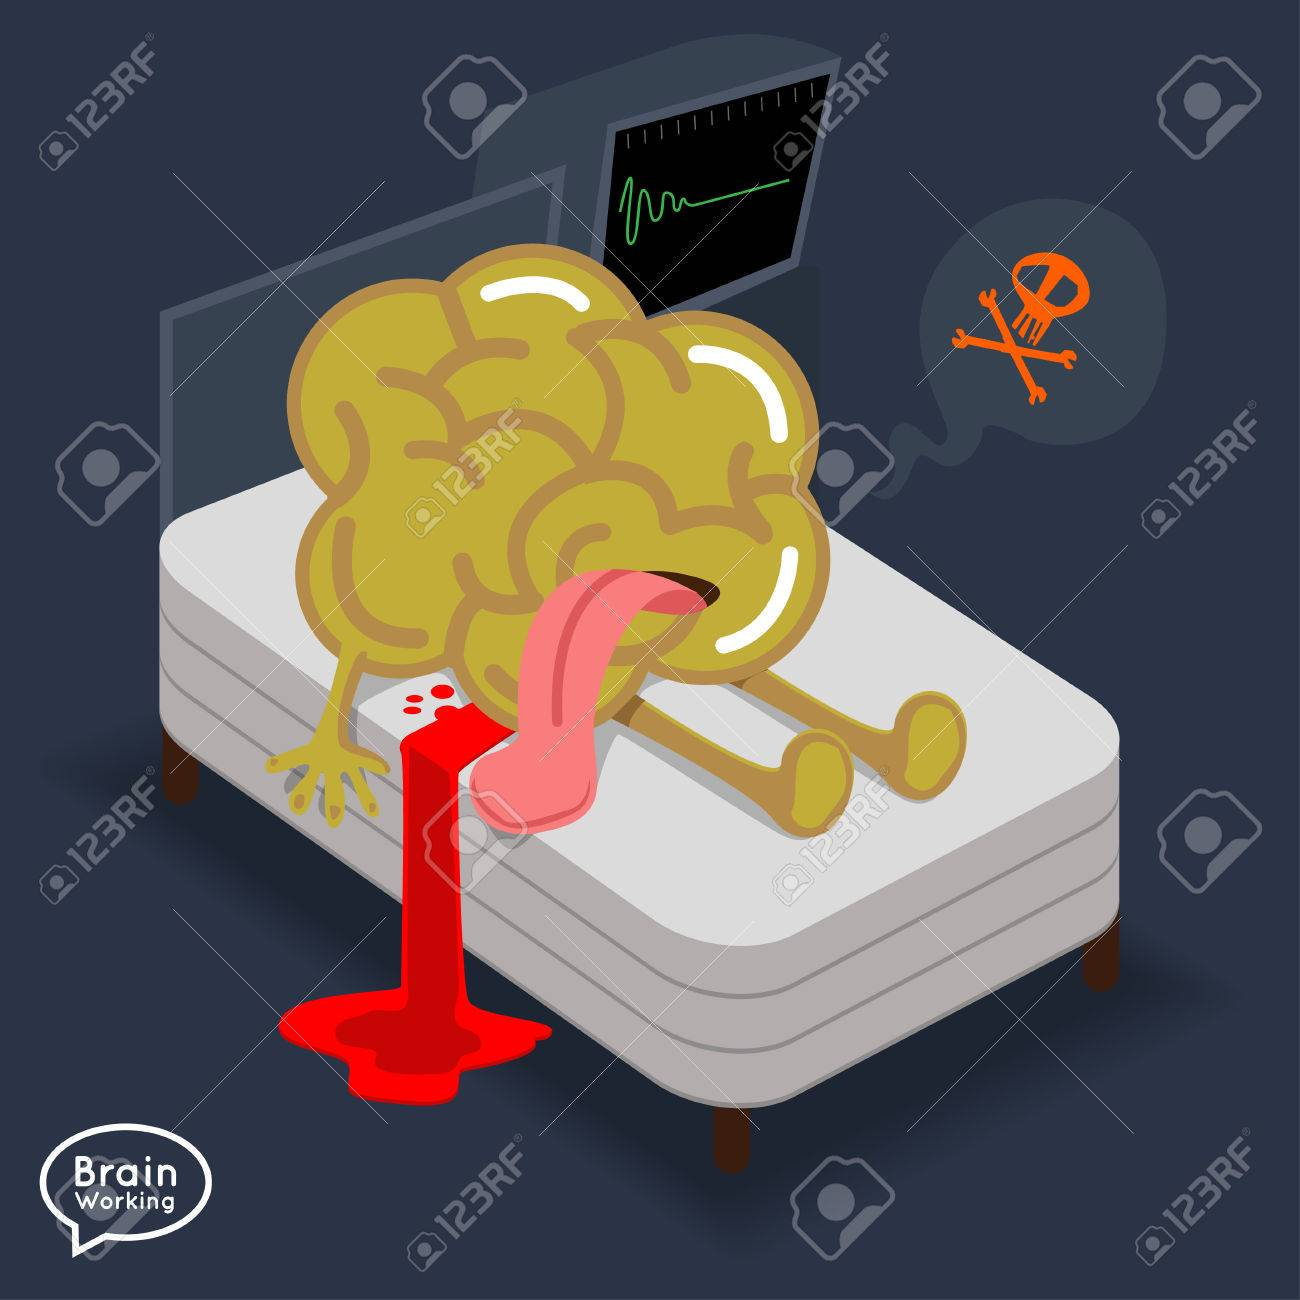 a9ee4a2a0f91 Brain dead on the bed Stock Vector - 22785670